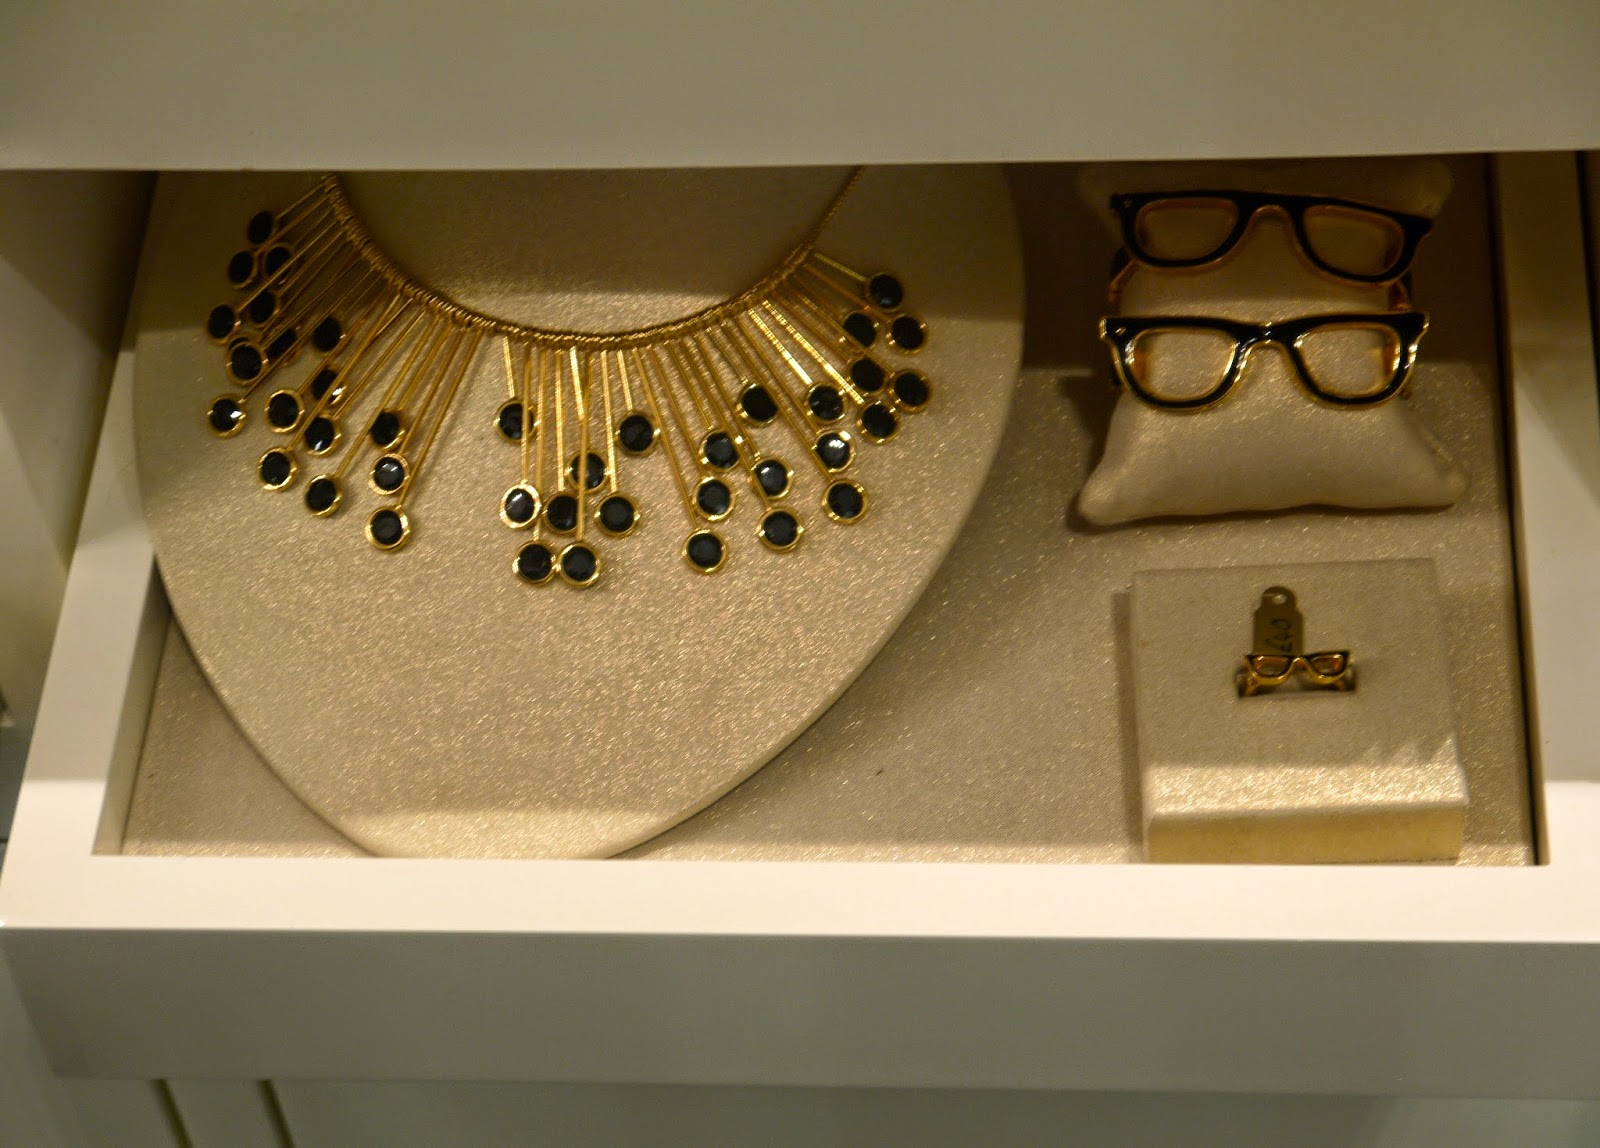 Kate Spade Glasses Shape Accessories